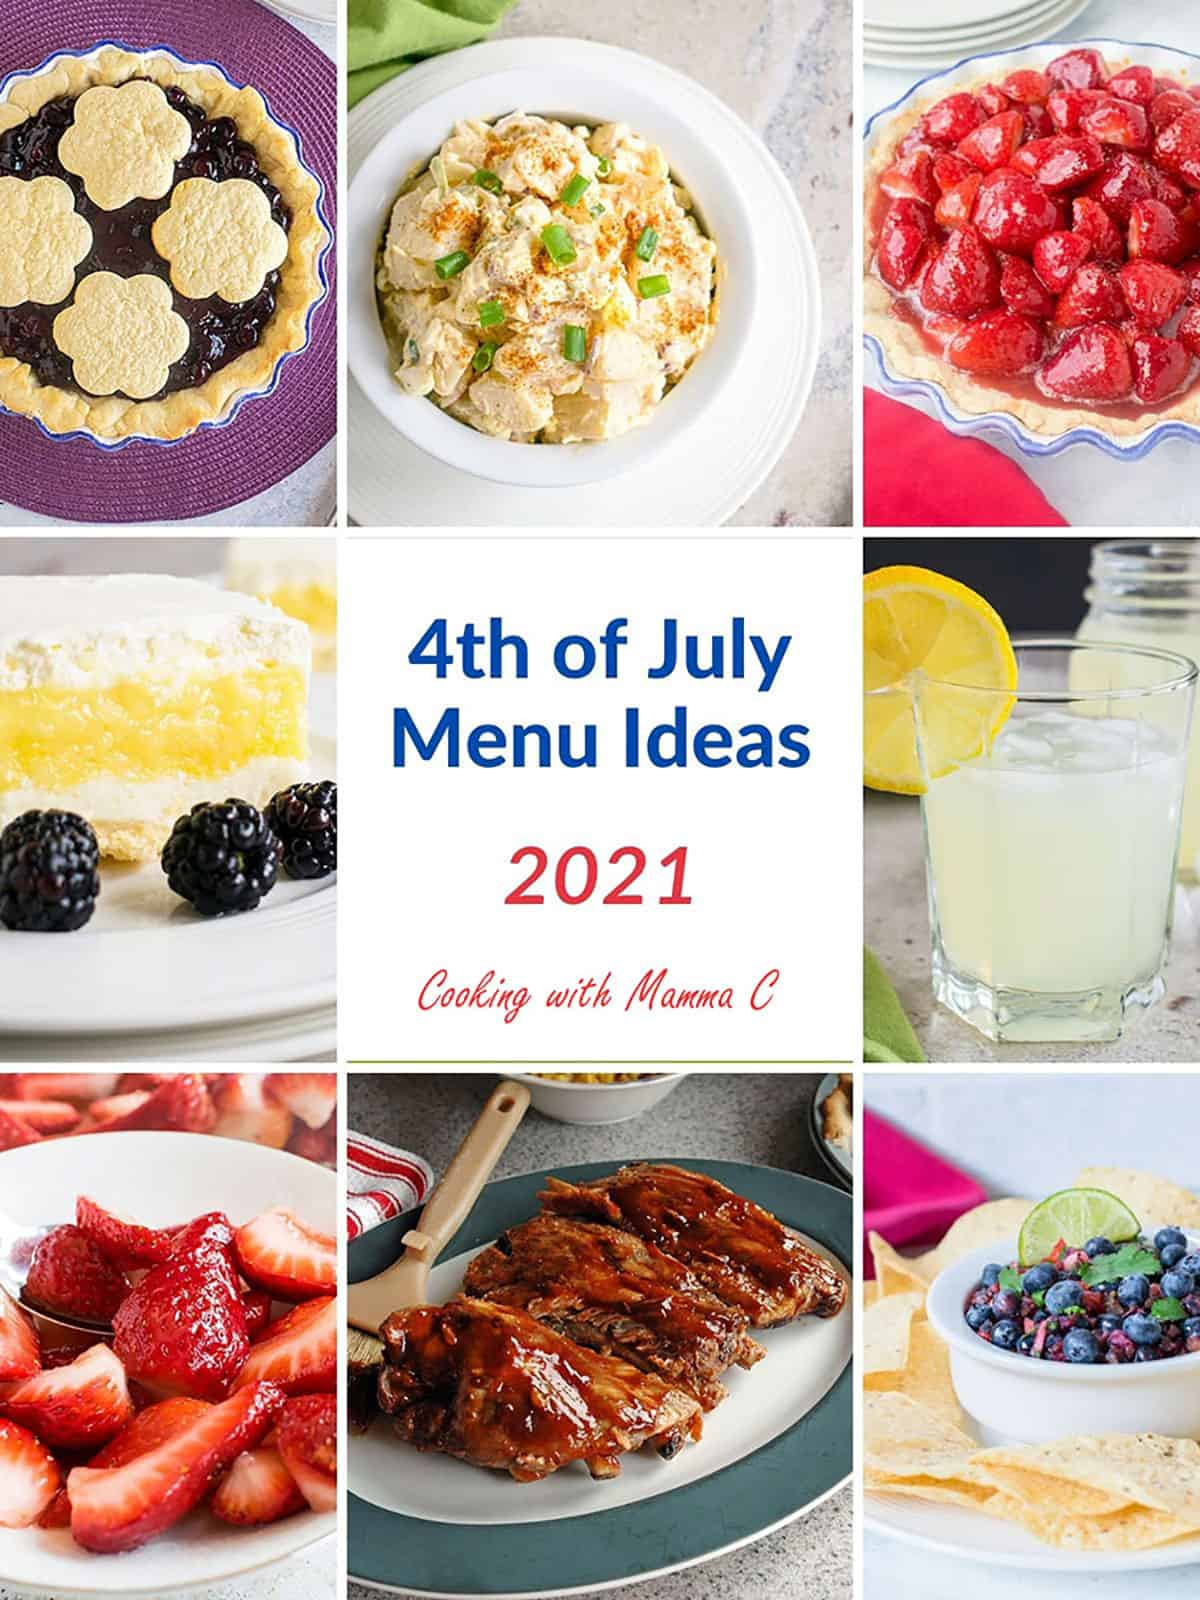 collage of pies, potato salad, ribs, lemon drink, and food for 4th of July